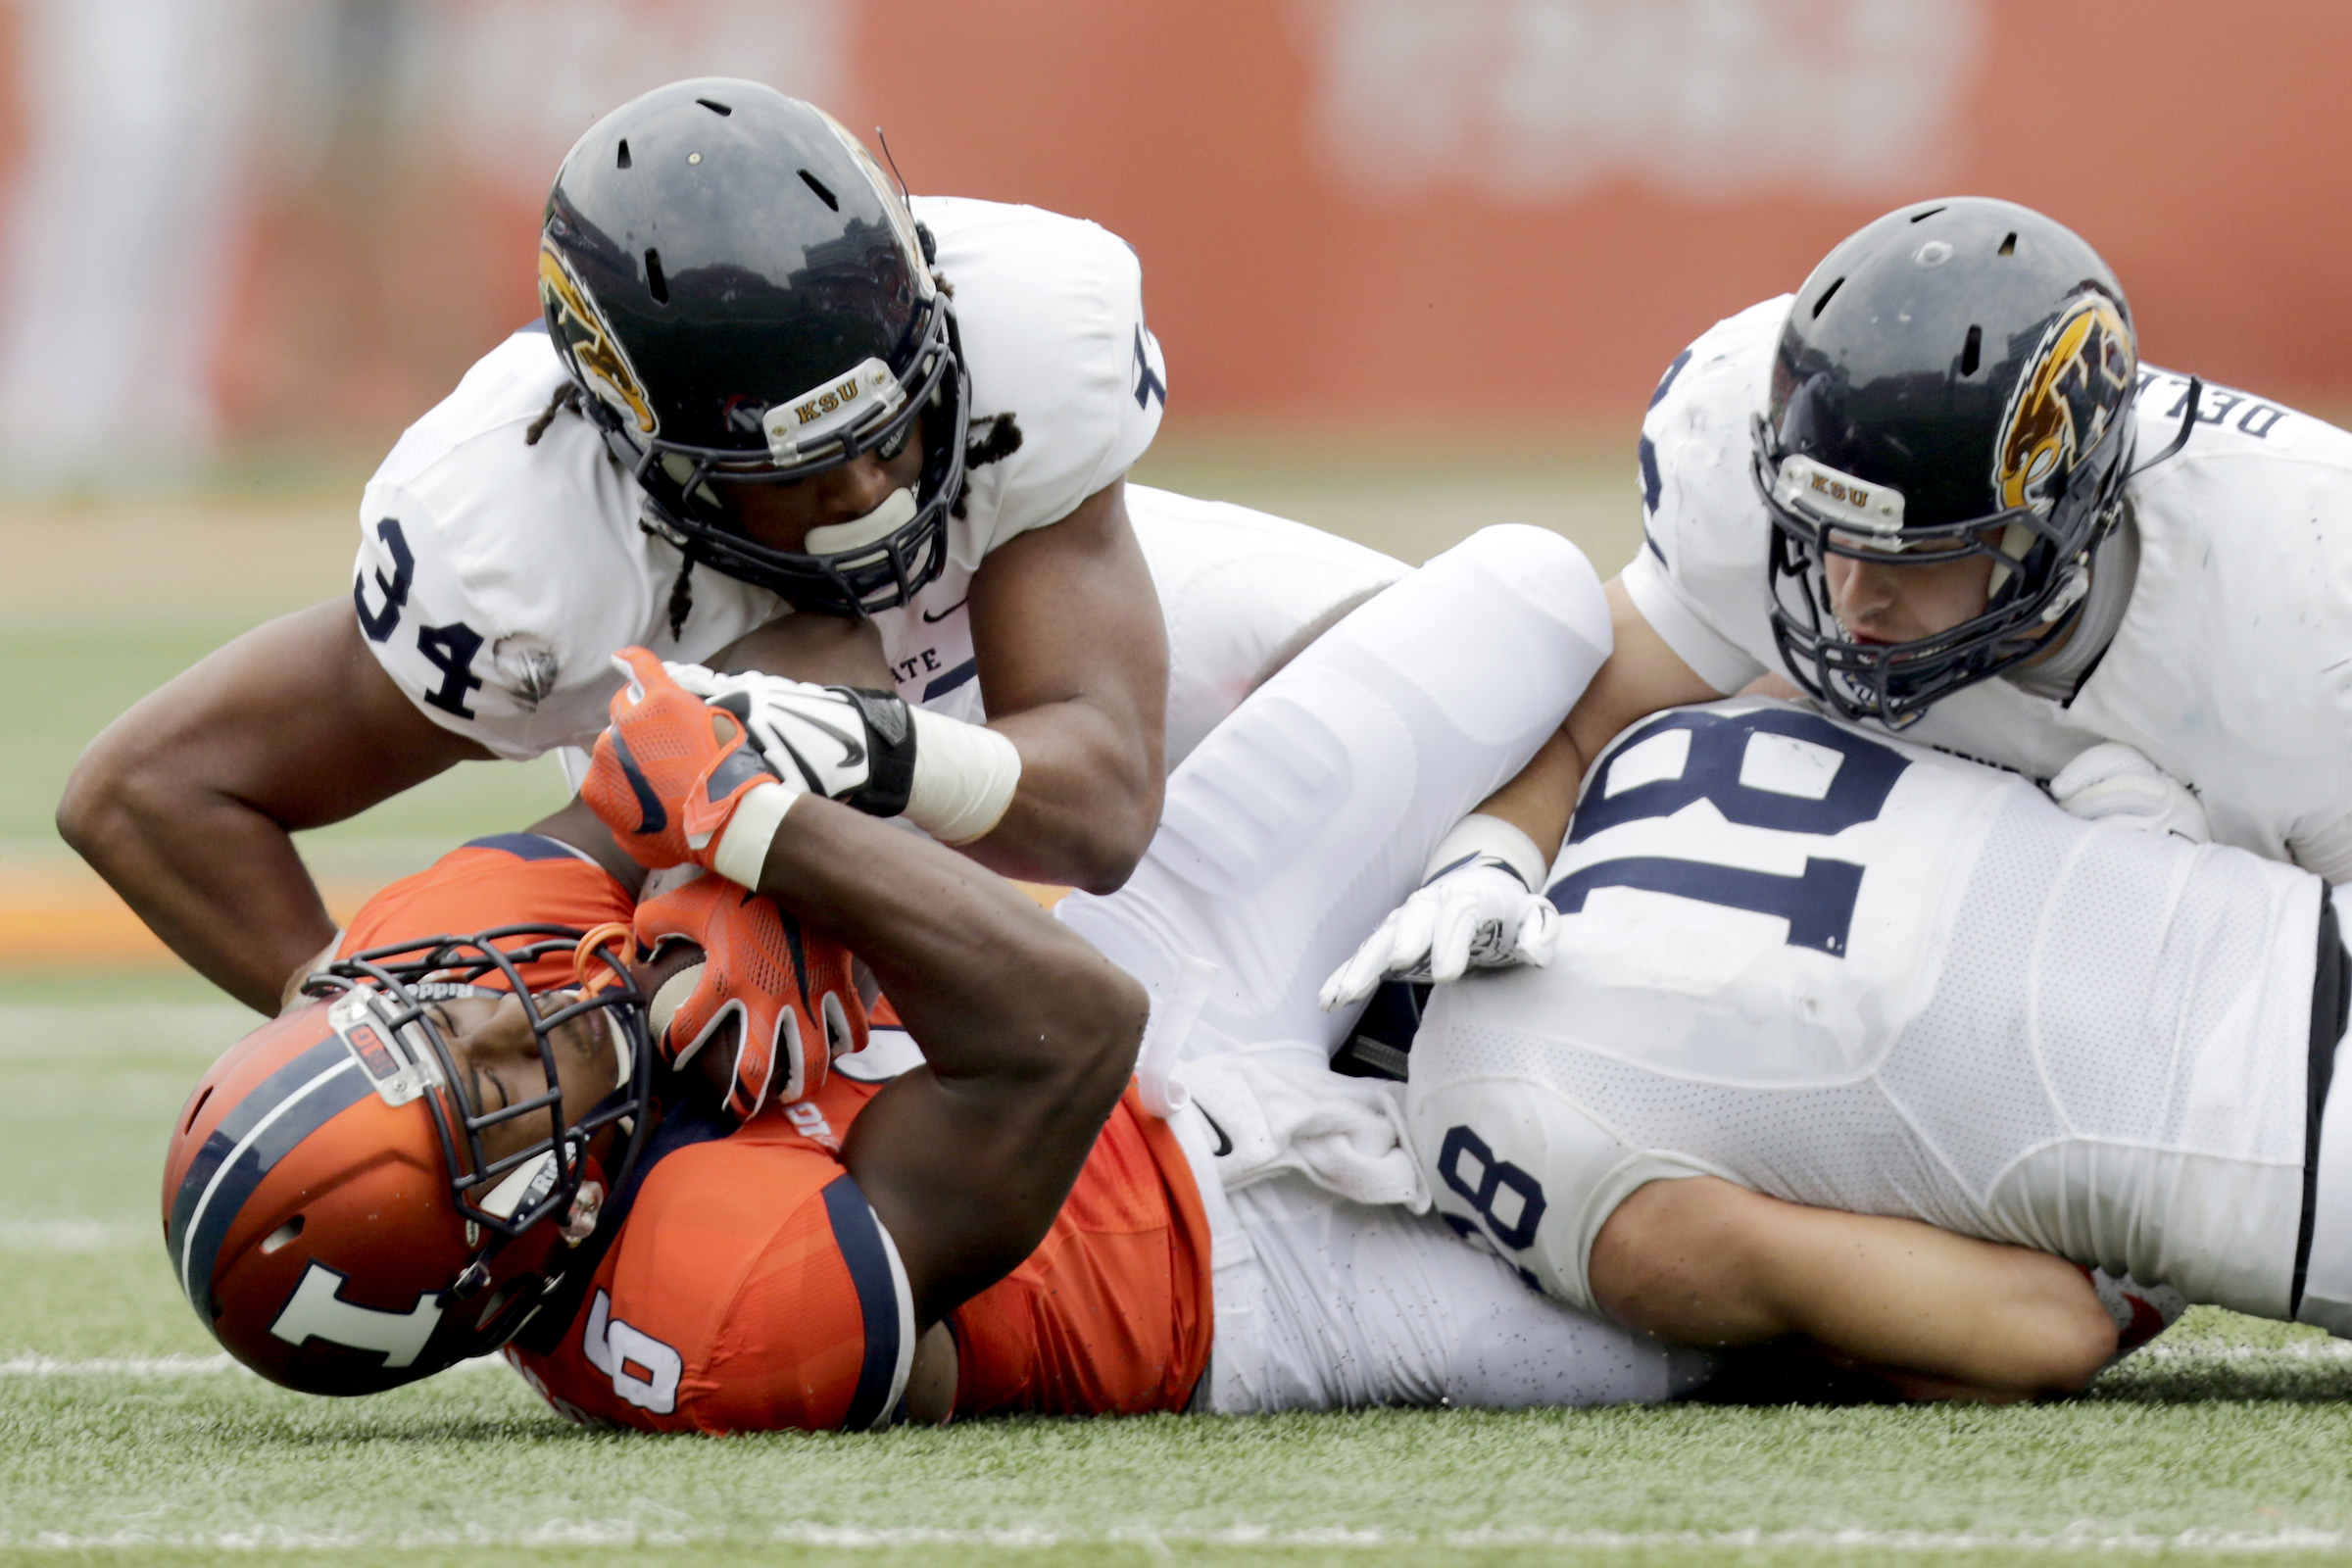 Kent State defensive end Anthony Johnson (34), linebacker Matt Dellinger (32) and safety Nate Holley (18) wrap up Illinois running back Josh Ferguson (6) during the first half of an NCAA college football game Saturday, Sept. 5, 2015, in Champaign, Ill. (A